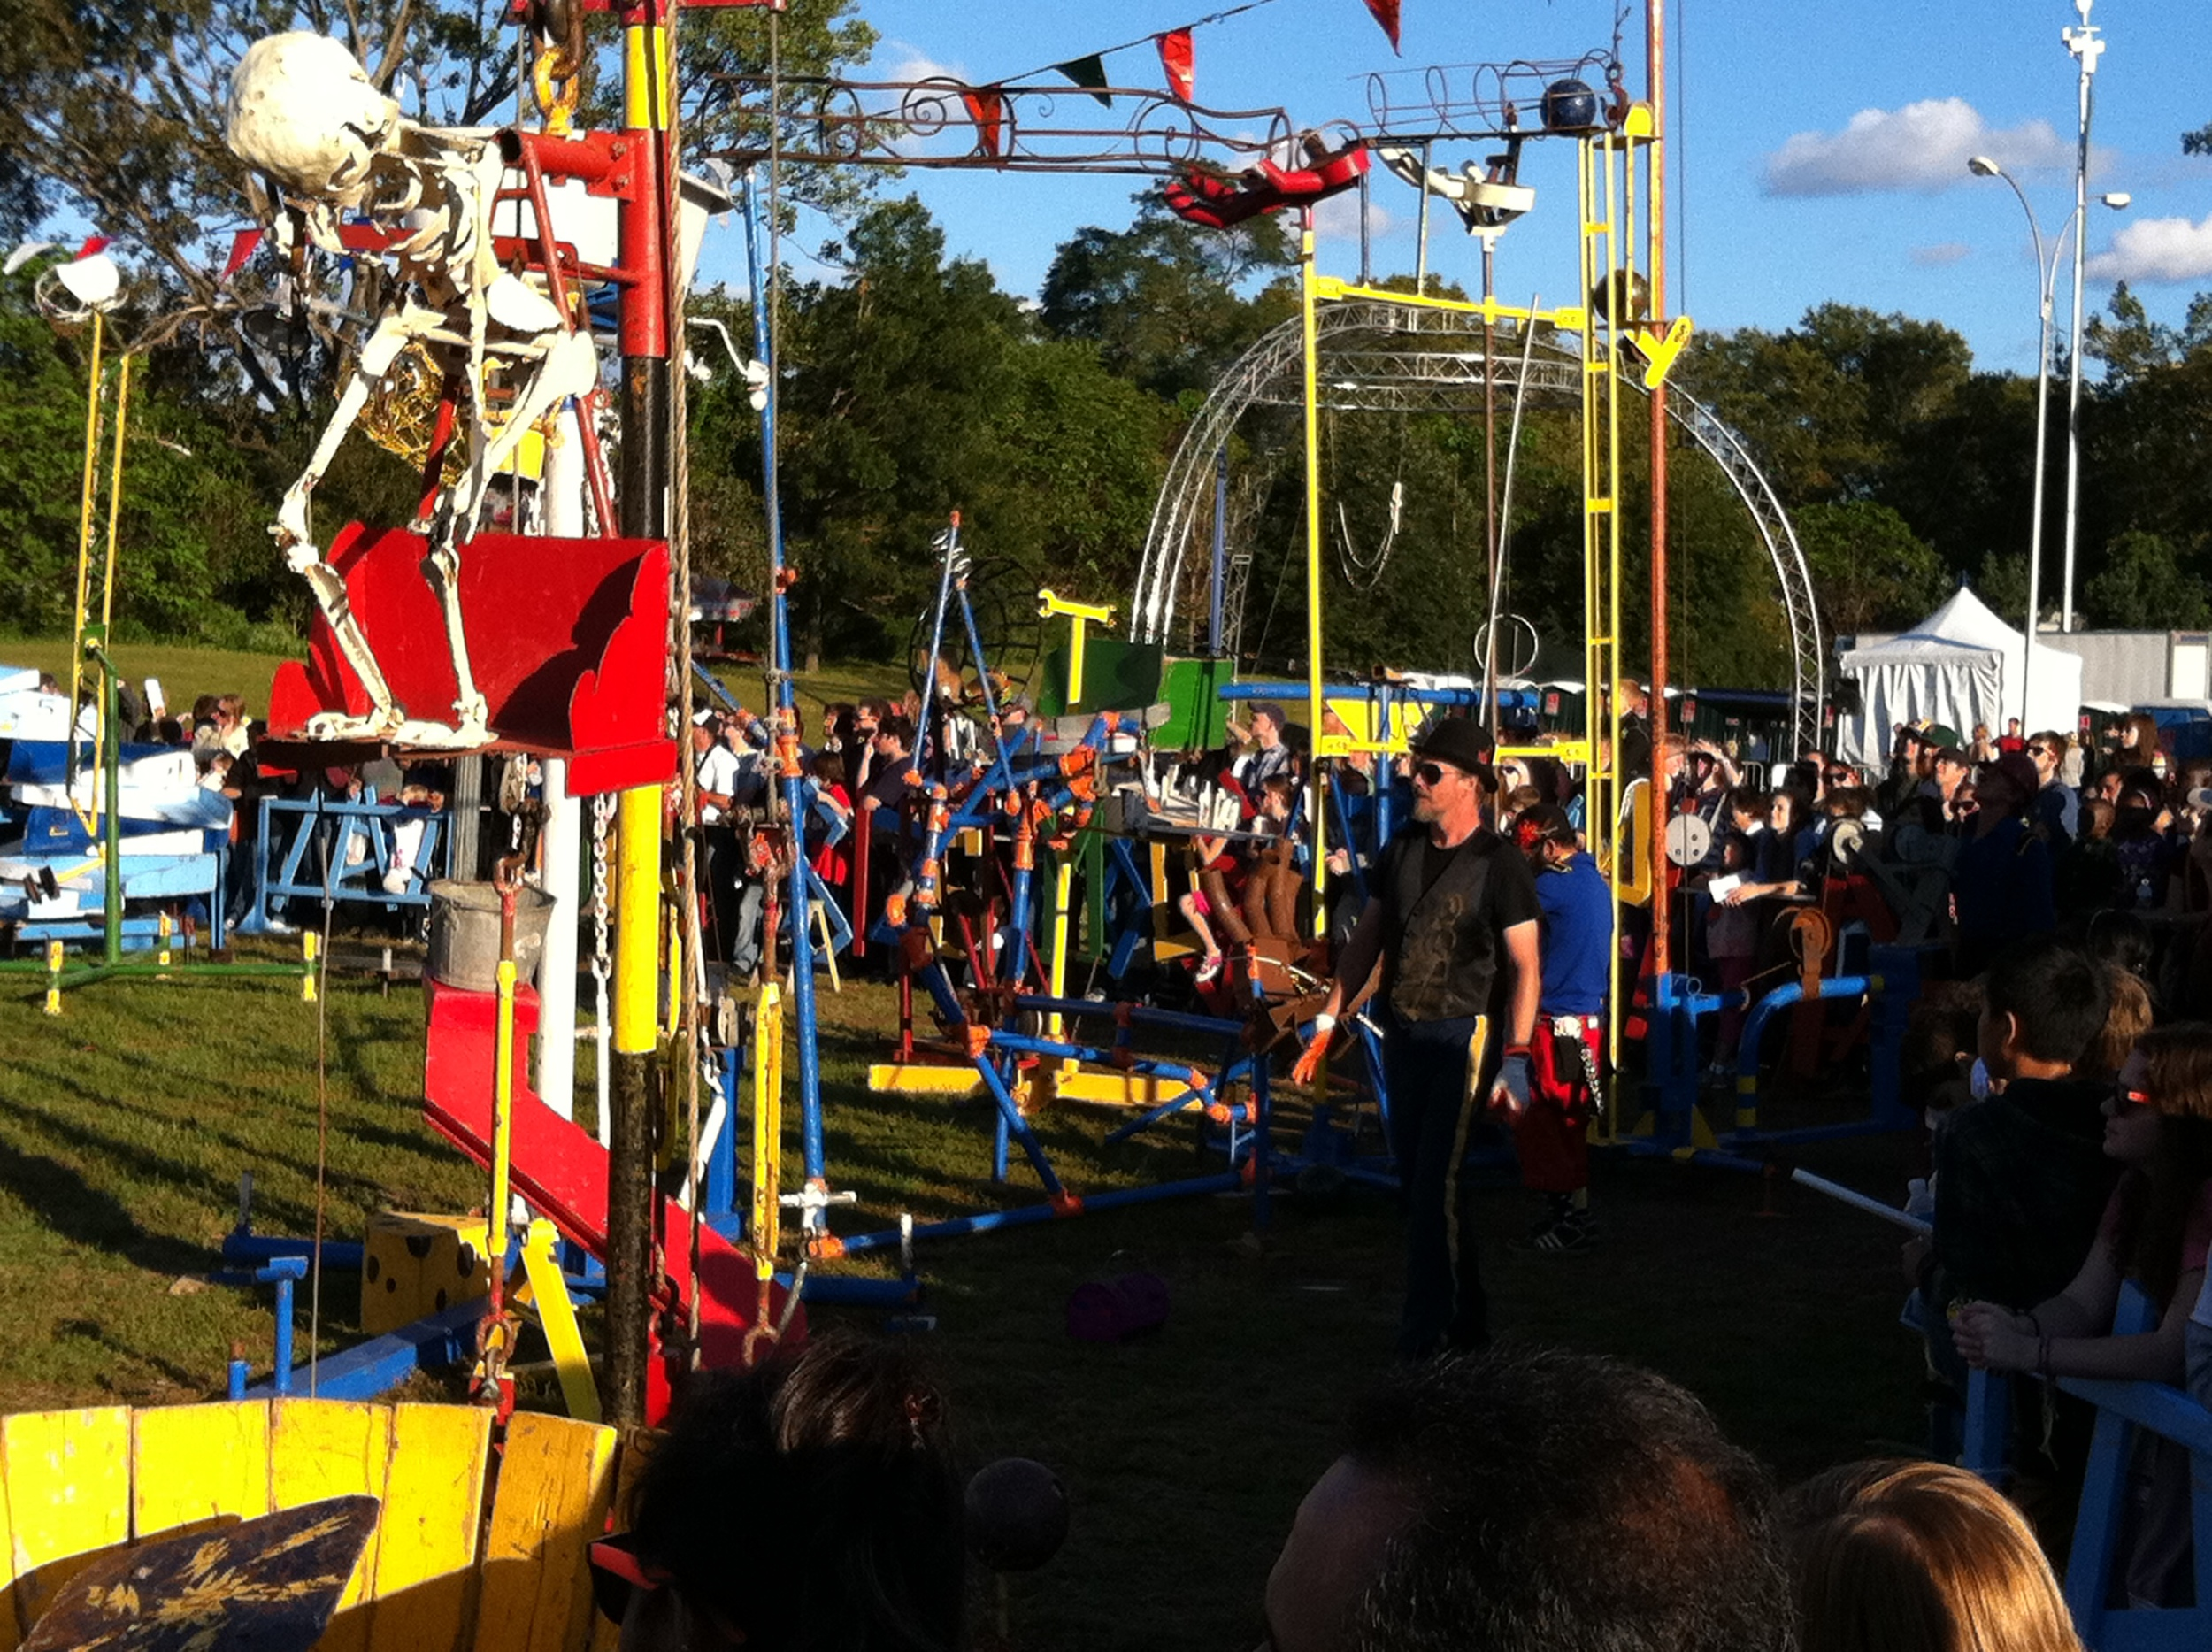 I went to Maker Faire. It's one part technology trade show and one part carnival sideshow.